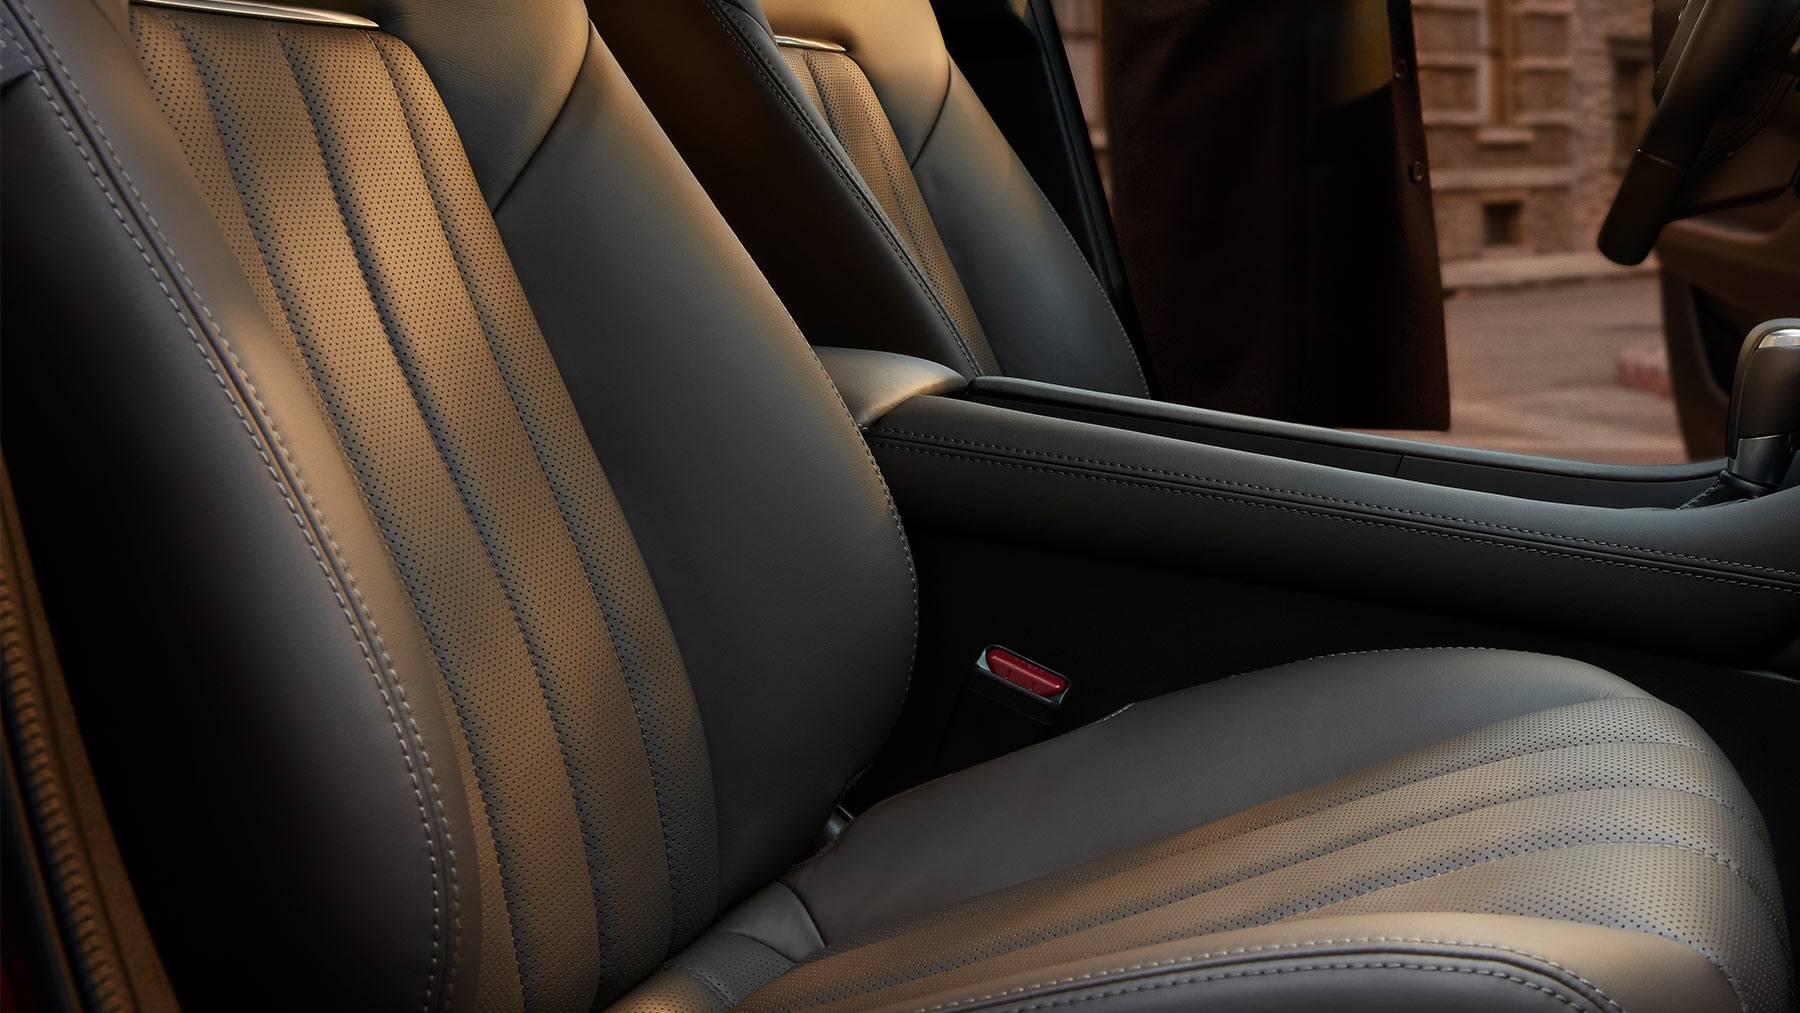 Enjoy Every Drive in the Mazda6 in Comfort!